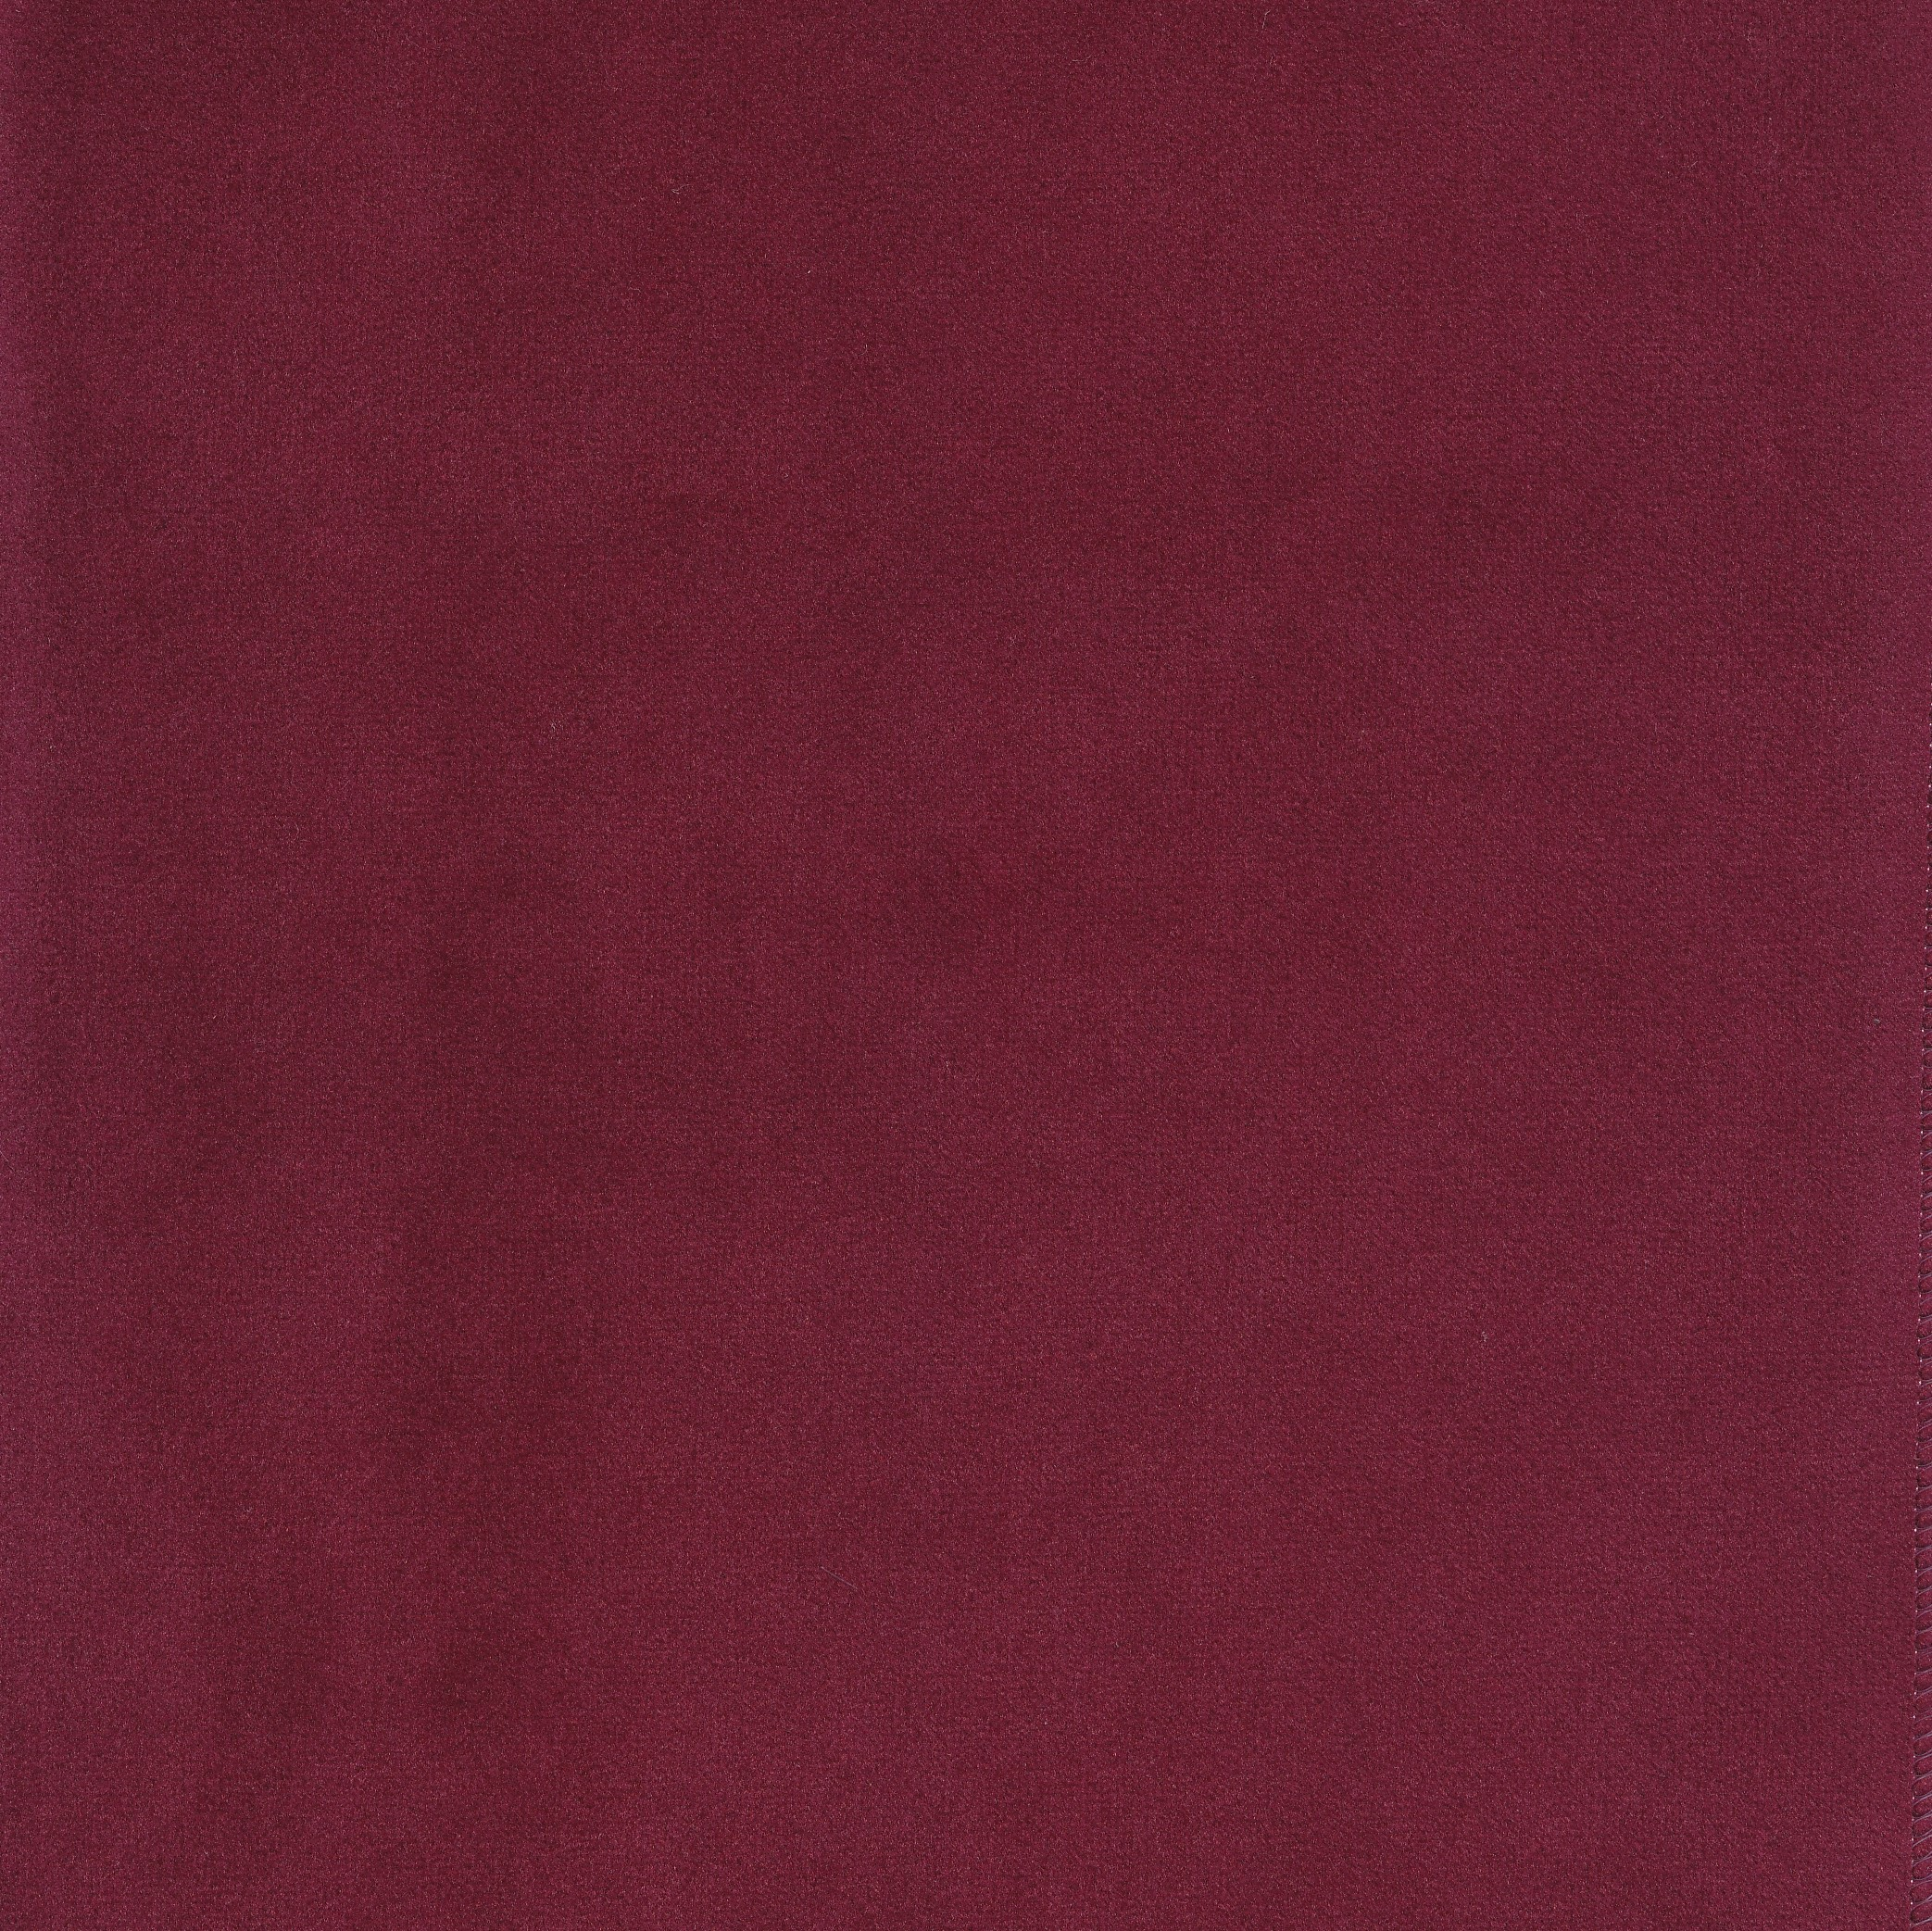 SEVEN WINERED